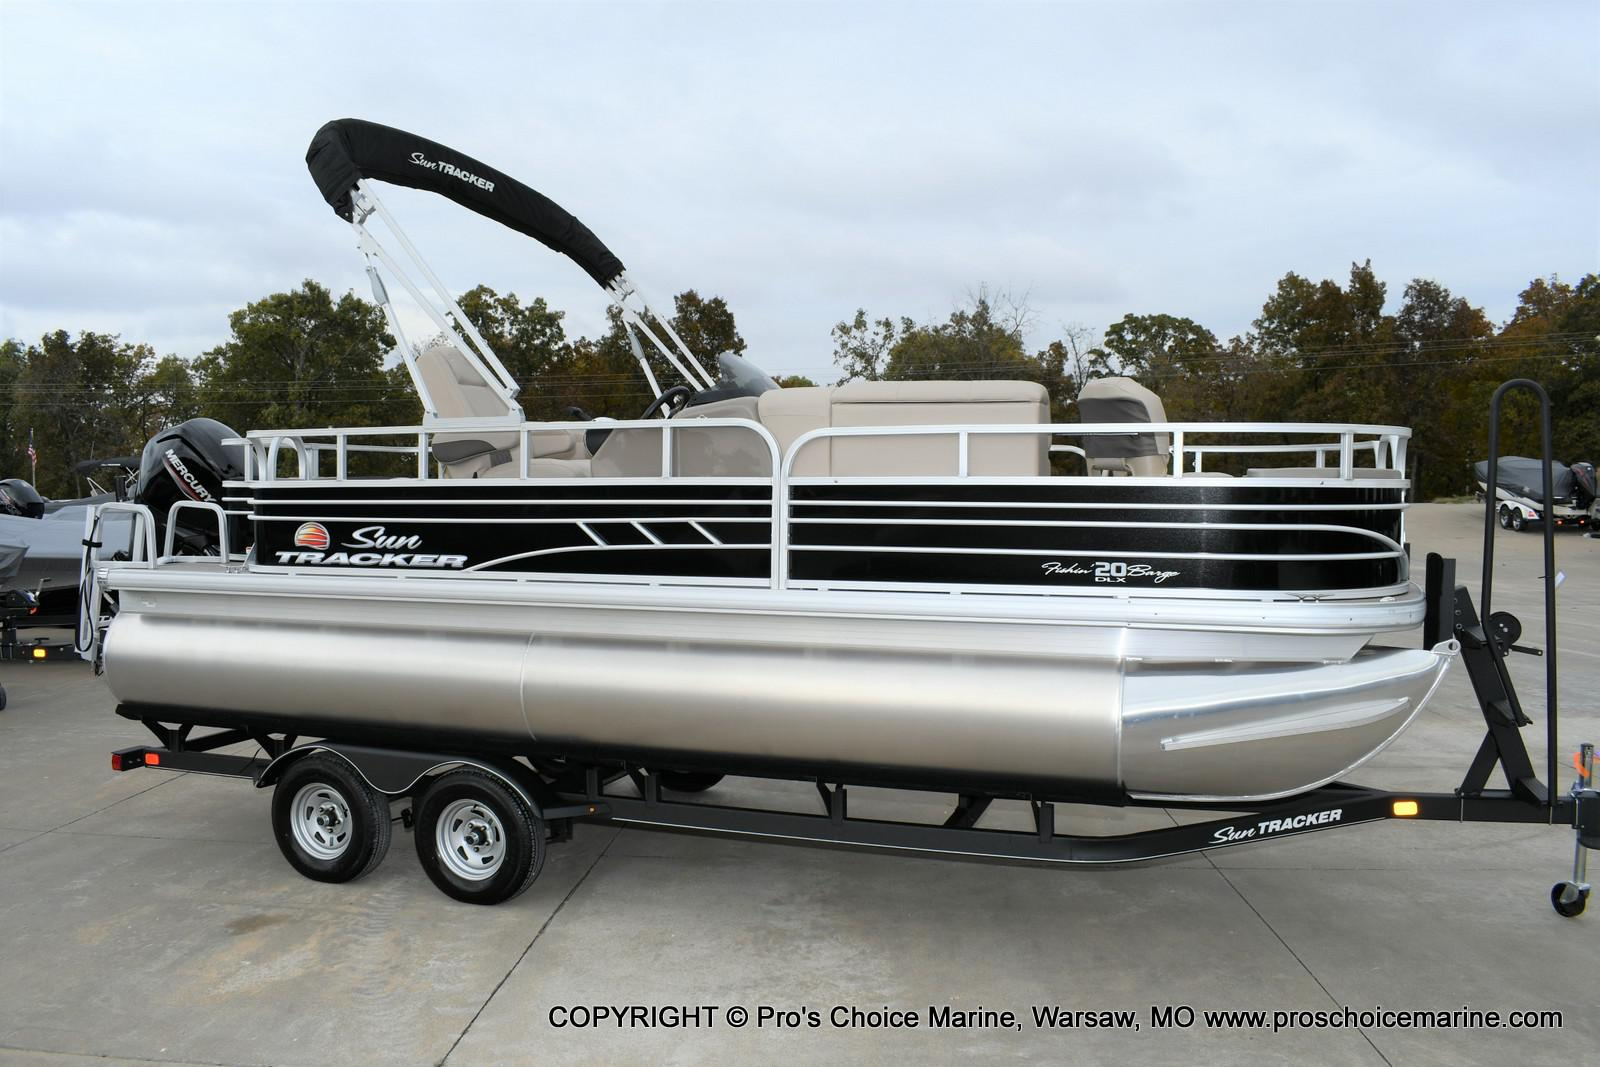 2020 Sun Tracker boat for sale, model of the boat is Fishin' Barge 20 DLX & Image # 12 of 50